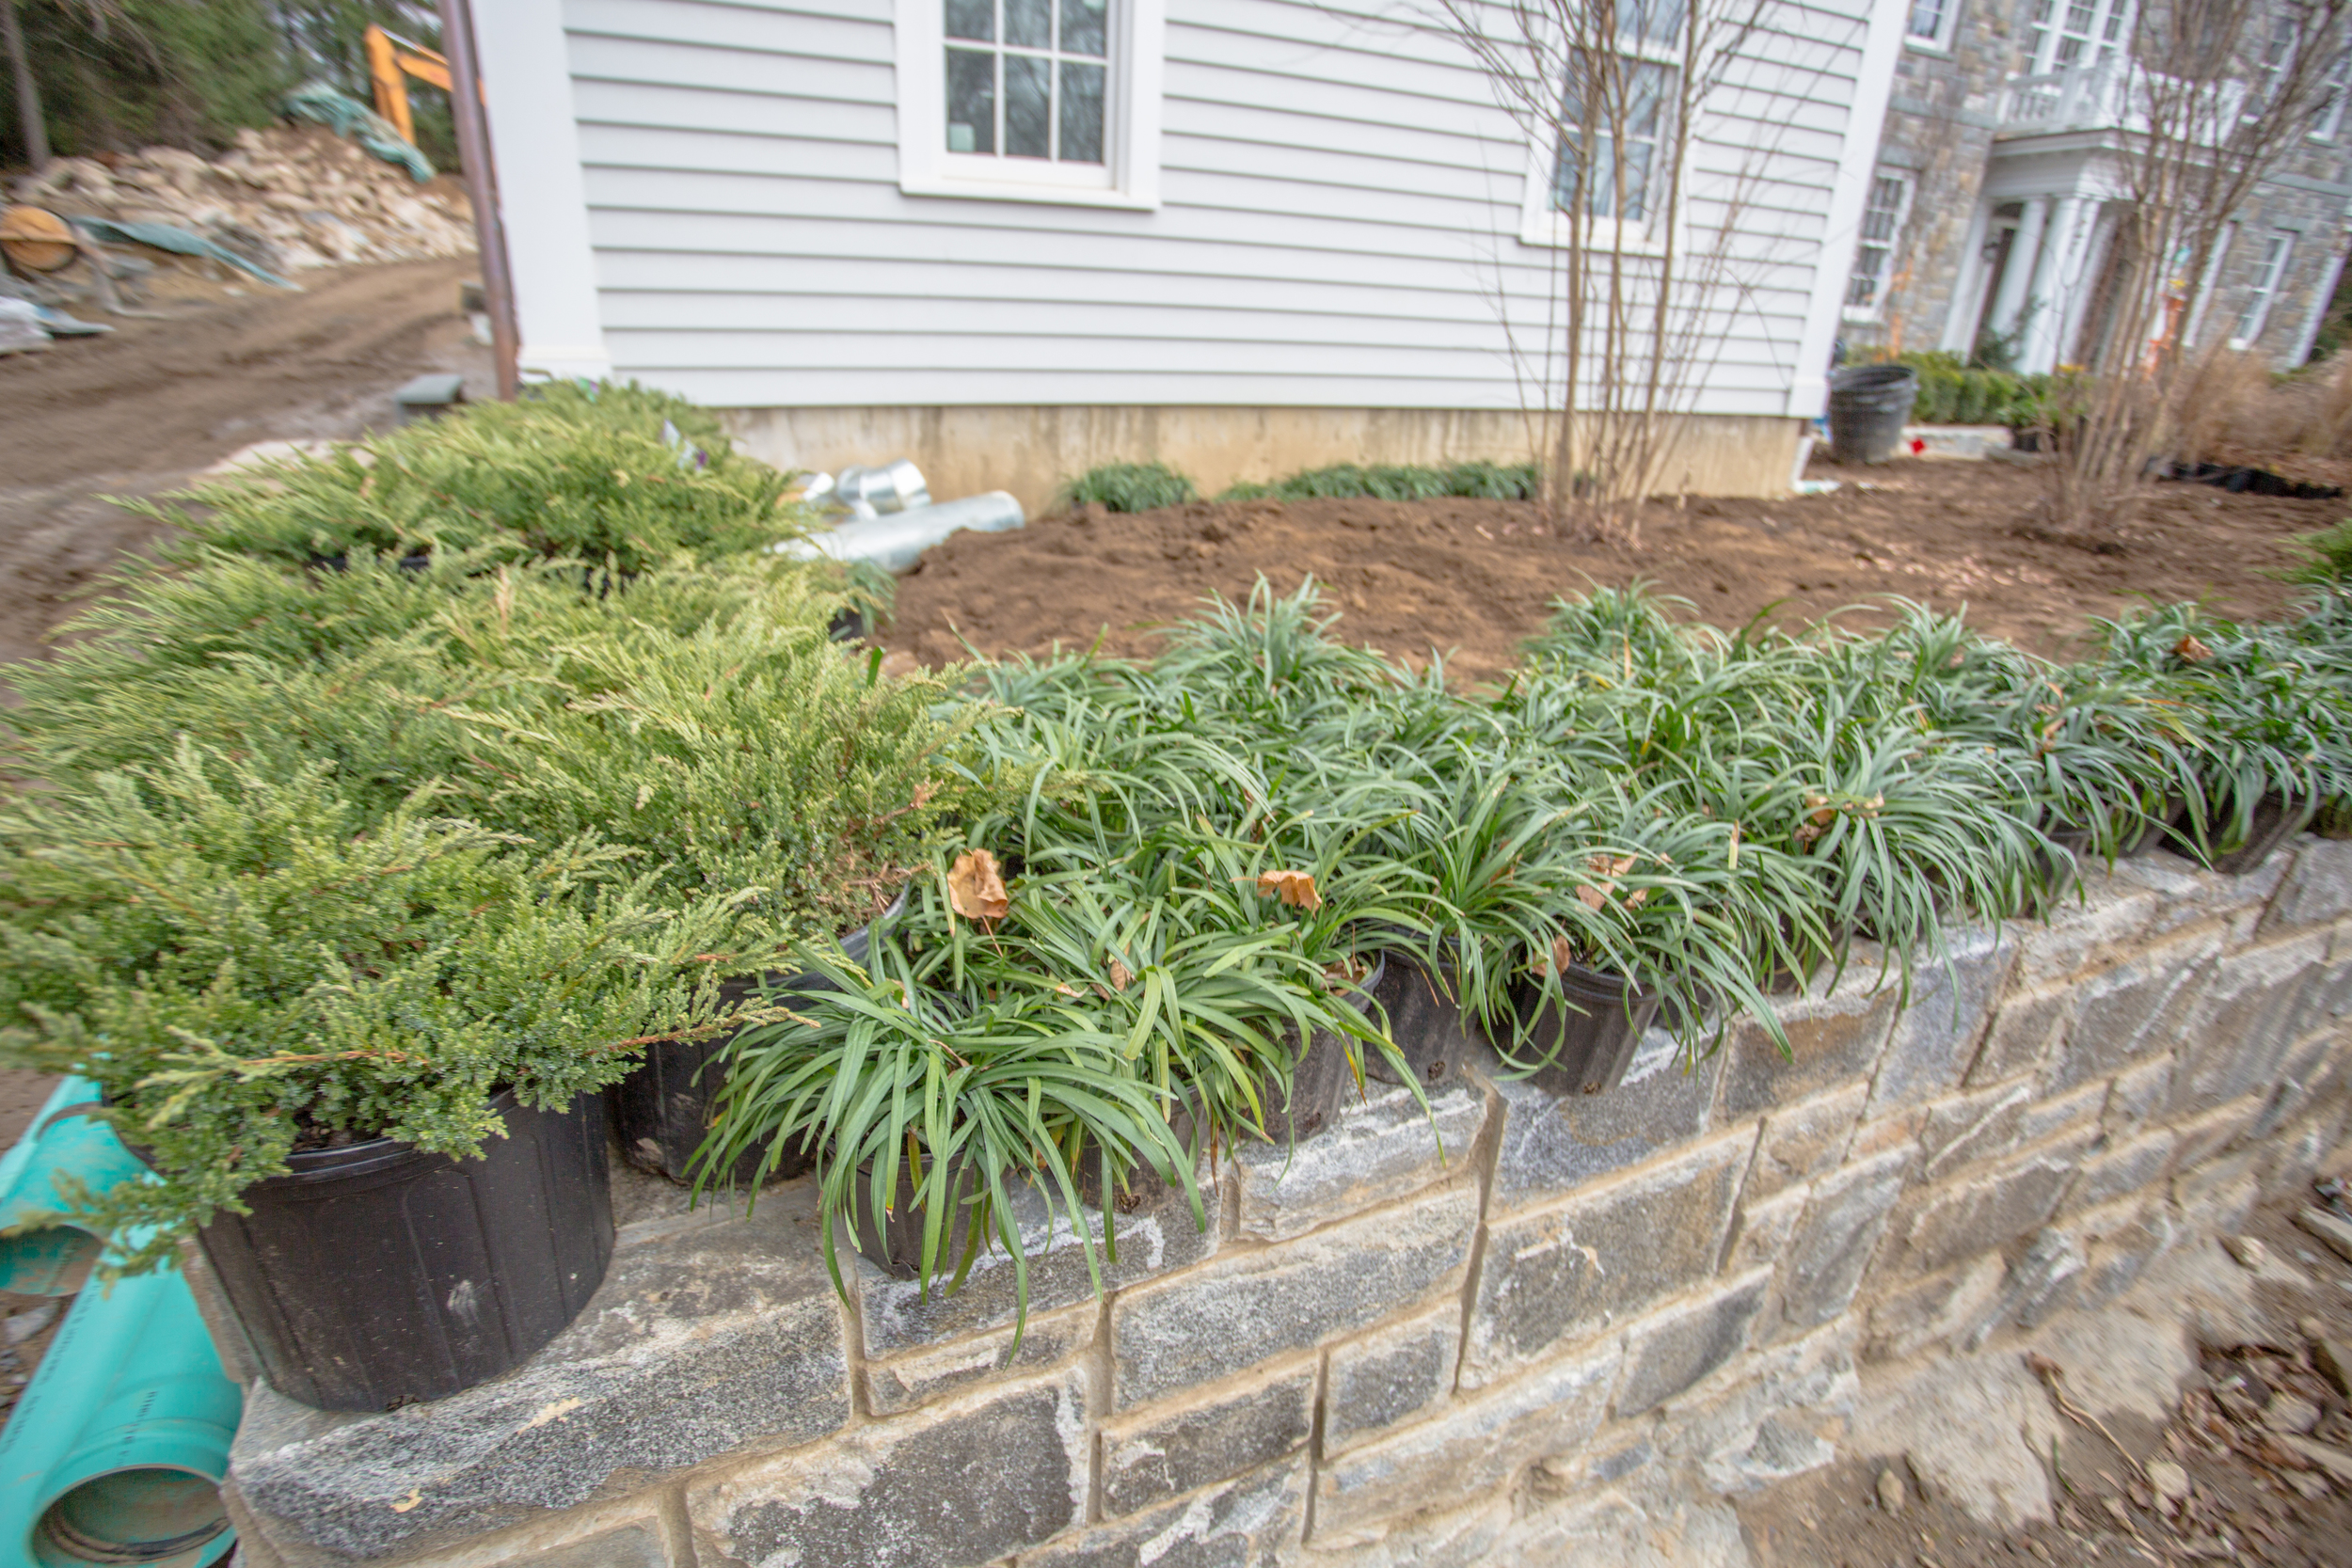 ADS_Landscaping and Sitework (5)_12.1.14.jpg